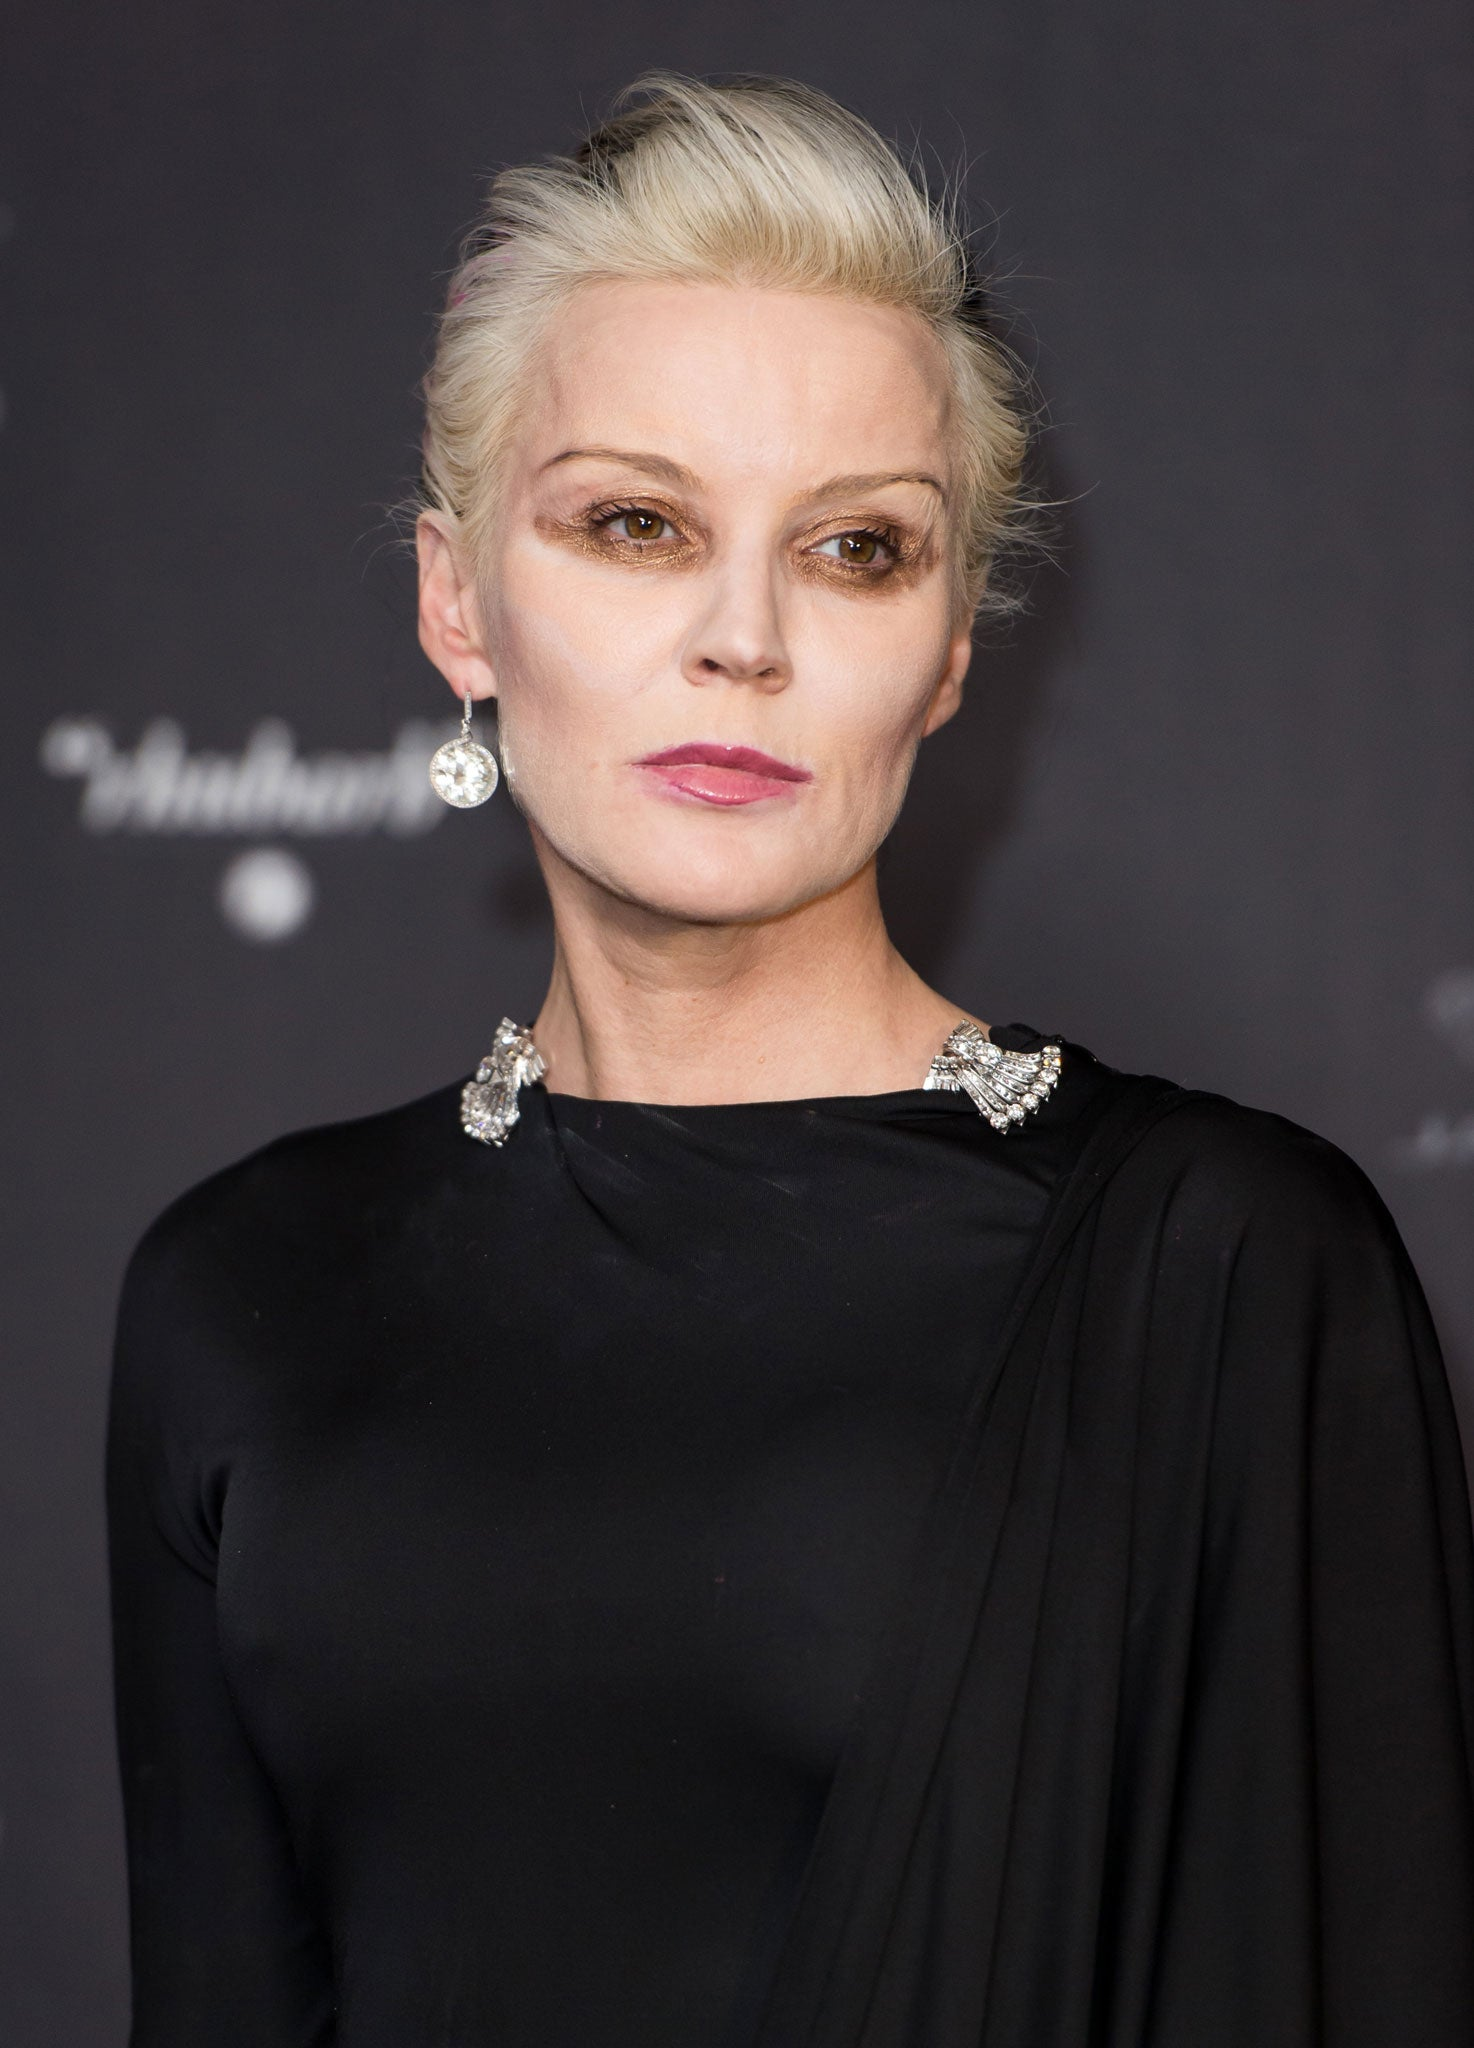 Photos Daphne Guinness nude photos 2019